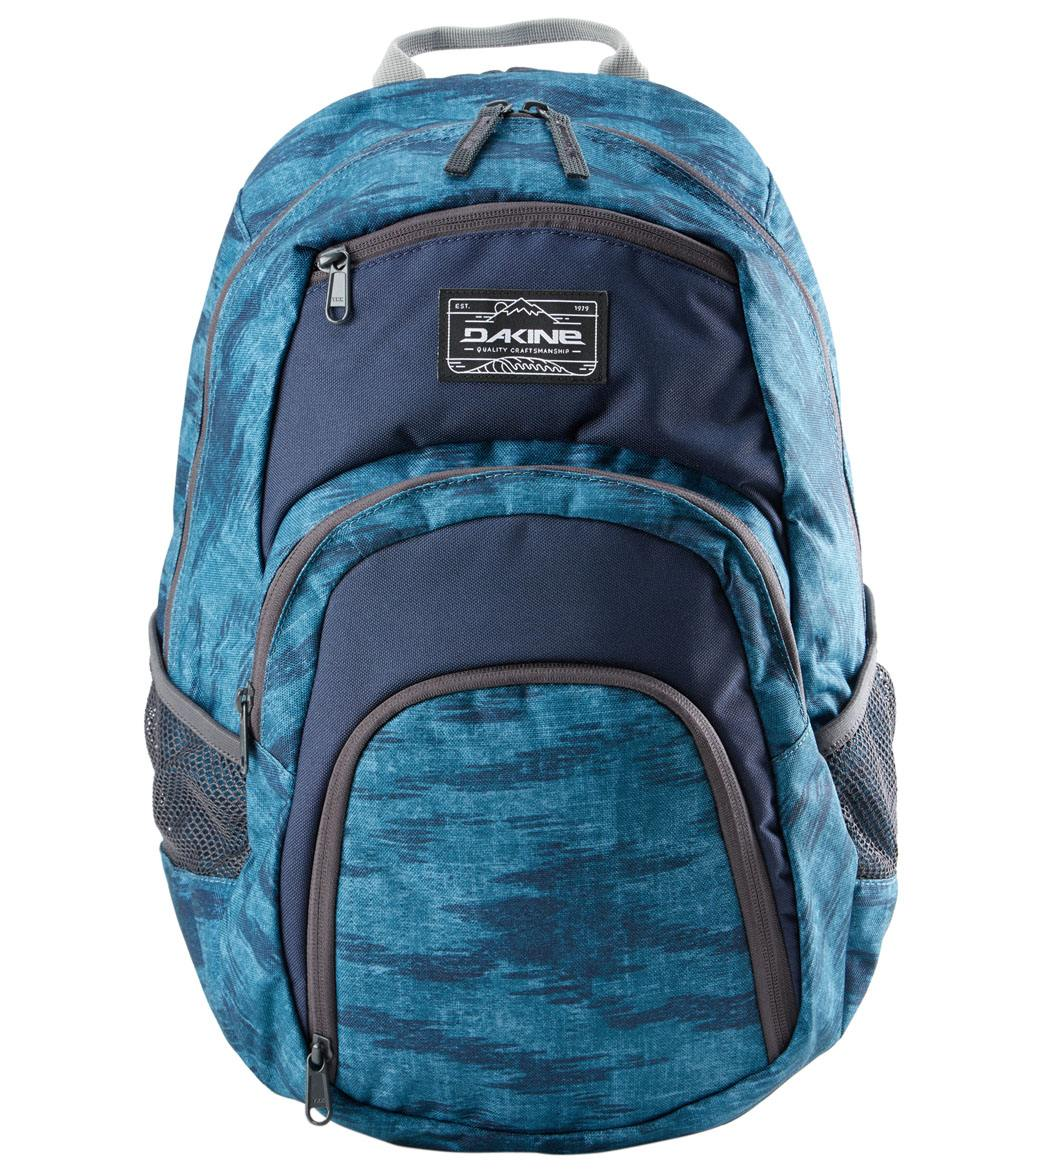 Dakine Campus 25L Backpack at SwimOutlet.com - Free Shipping